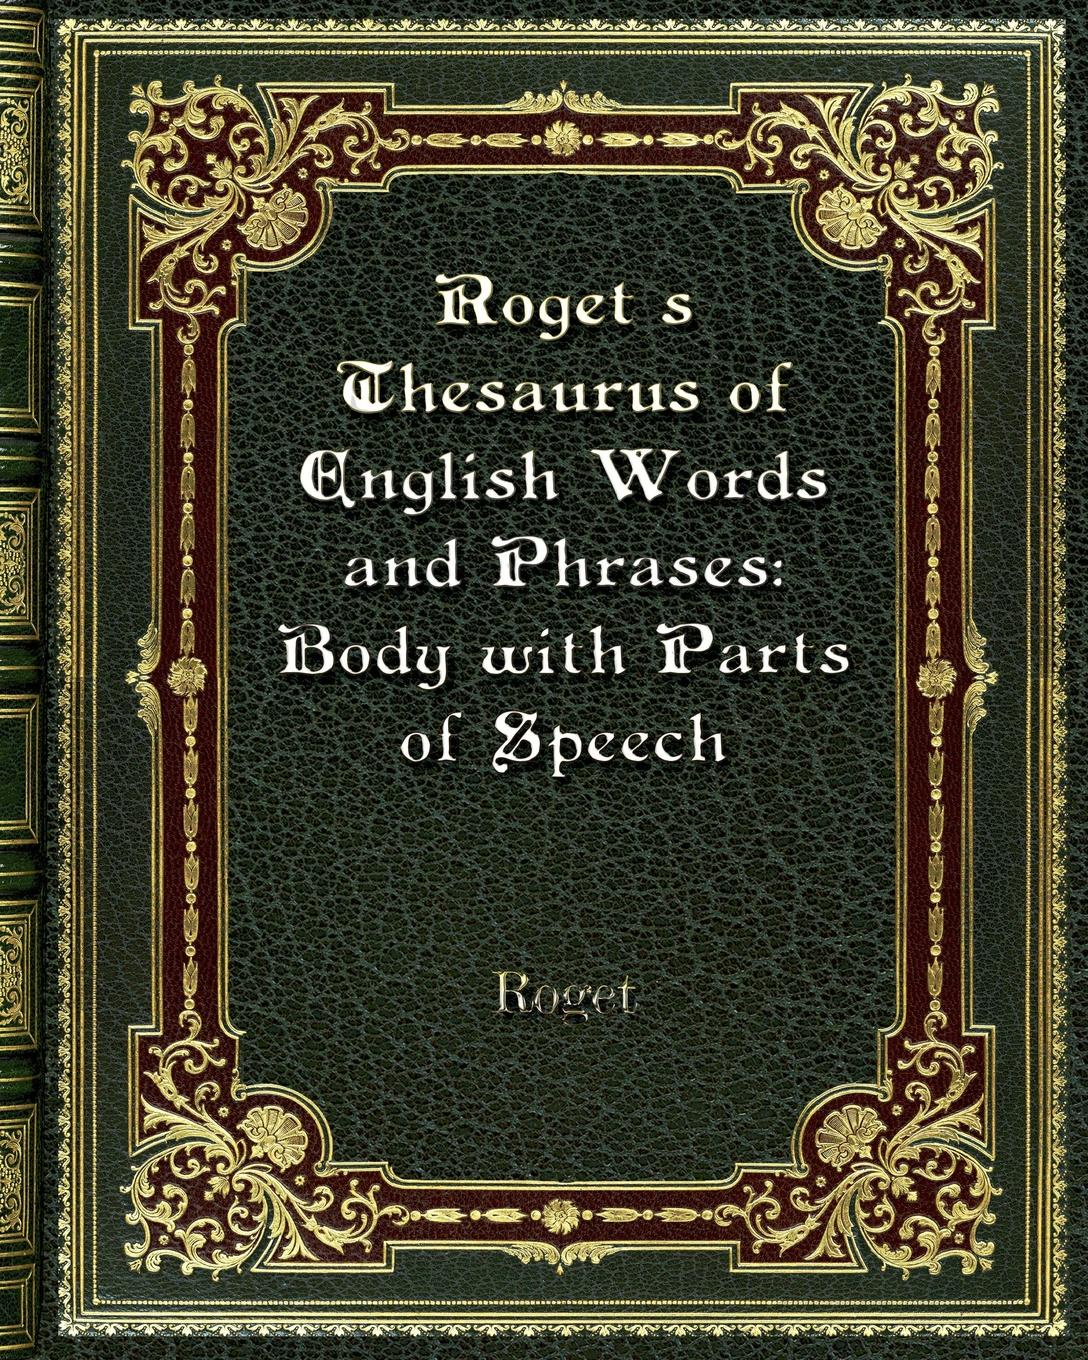 Roget Rogets Thesaurus of English Words and Phrases. Body with Parts Speech